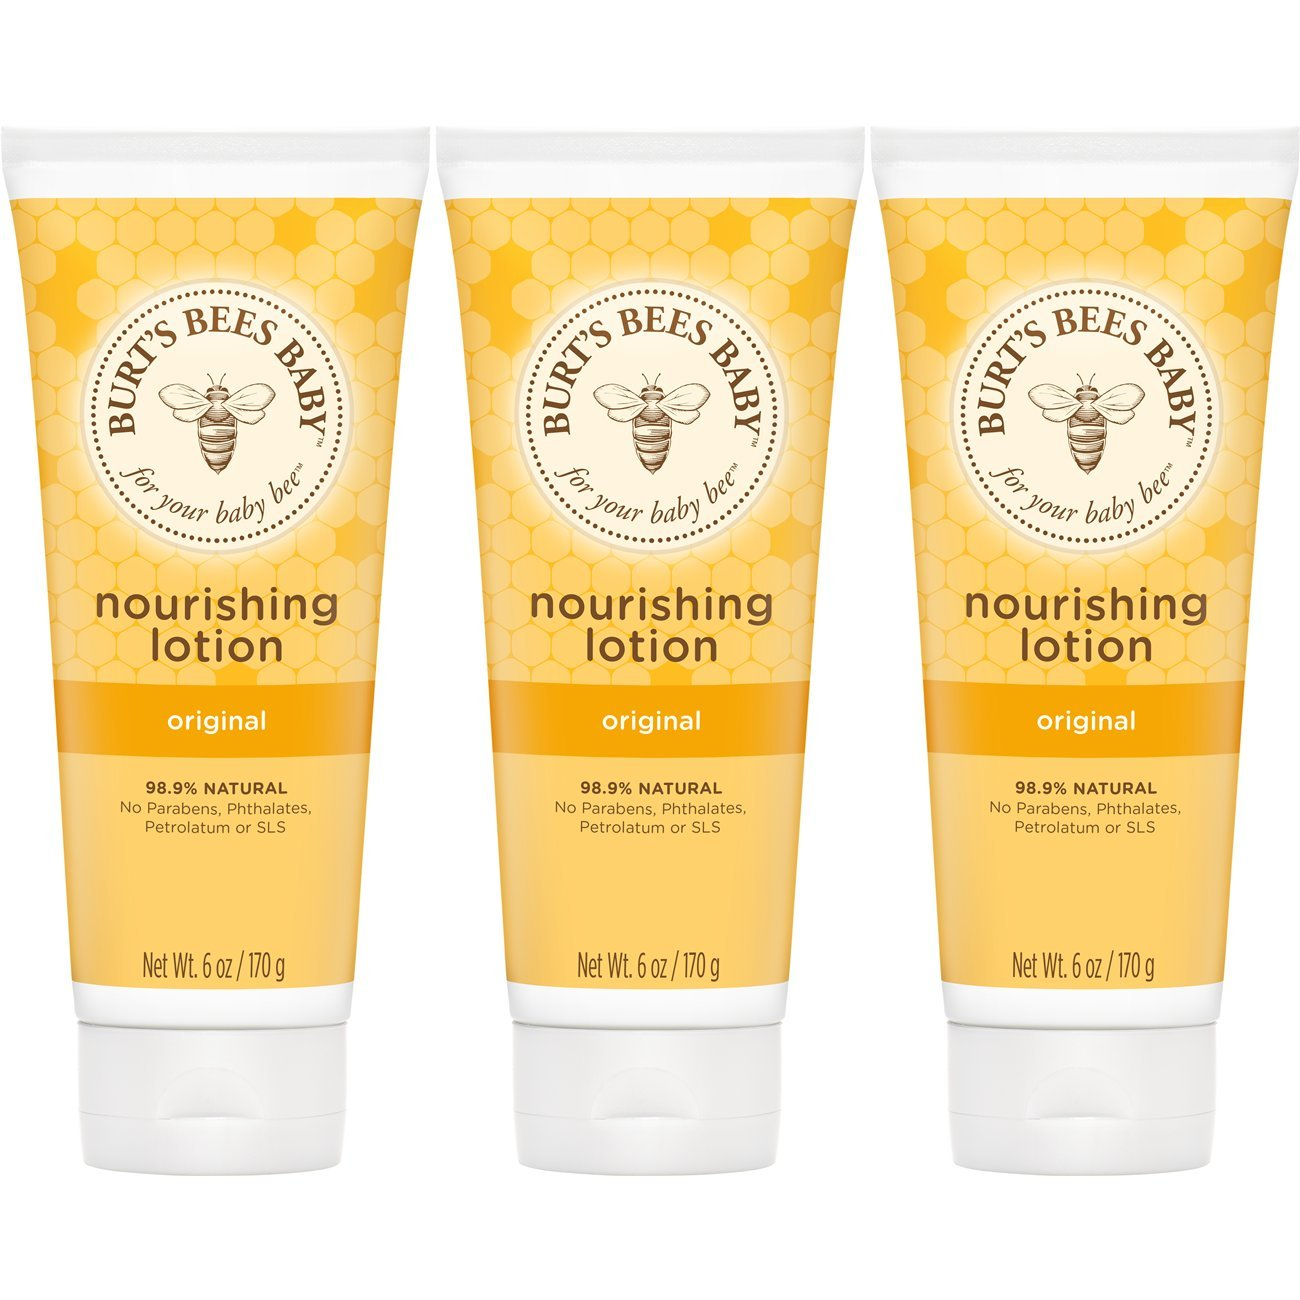 Burt's Bees Baby Nourishing Lotion, Original, 6 Ounces (Packaging May Vary)